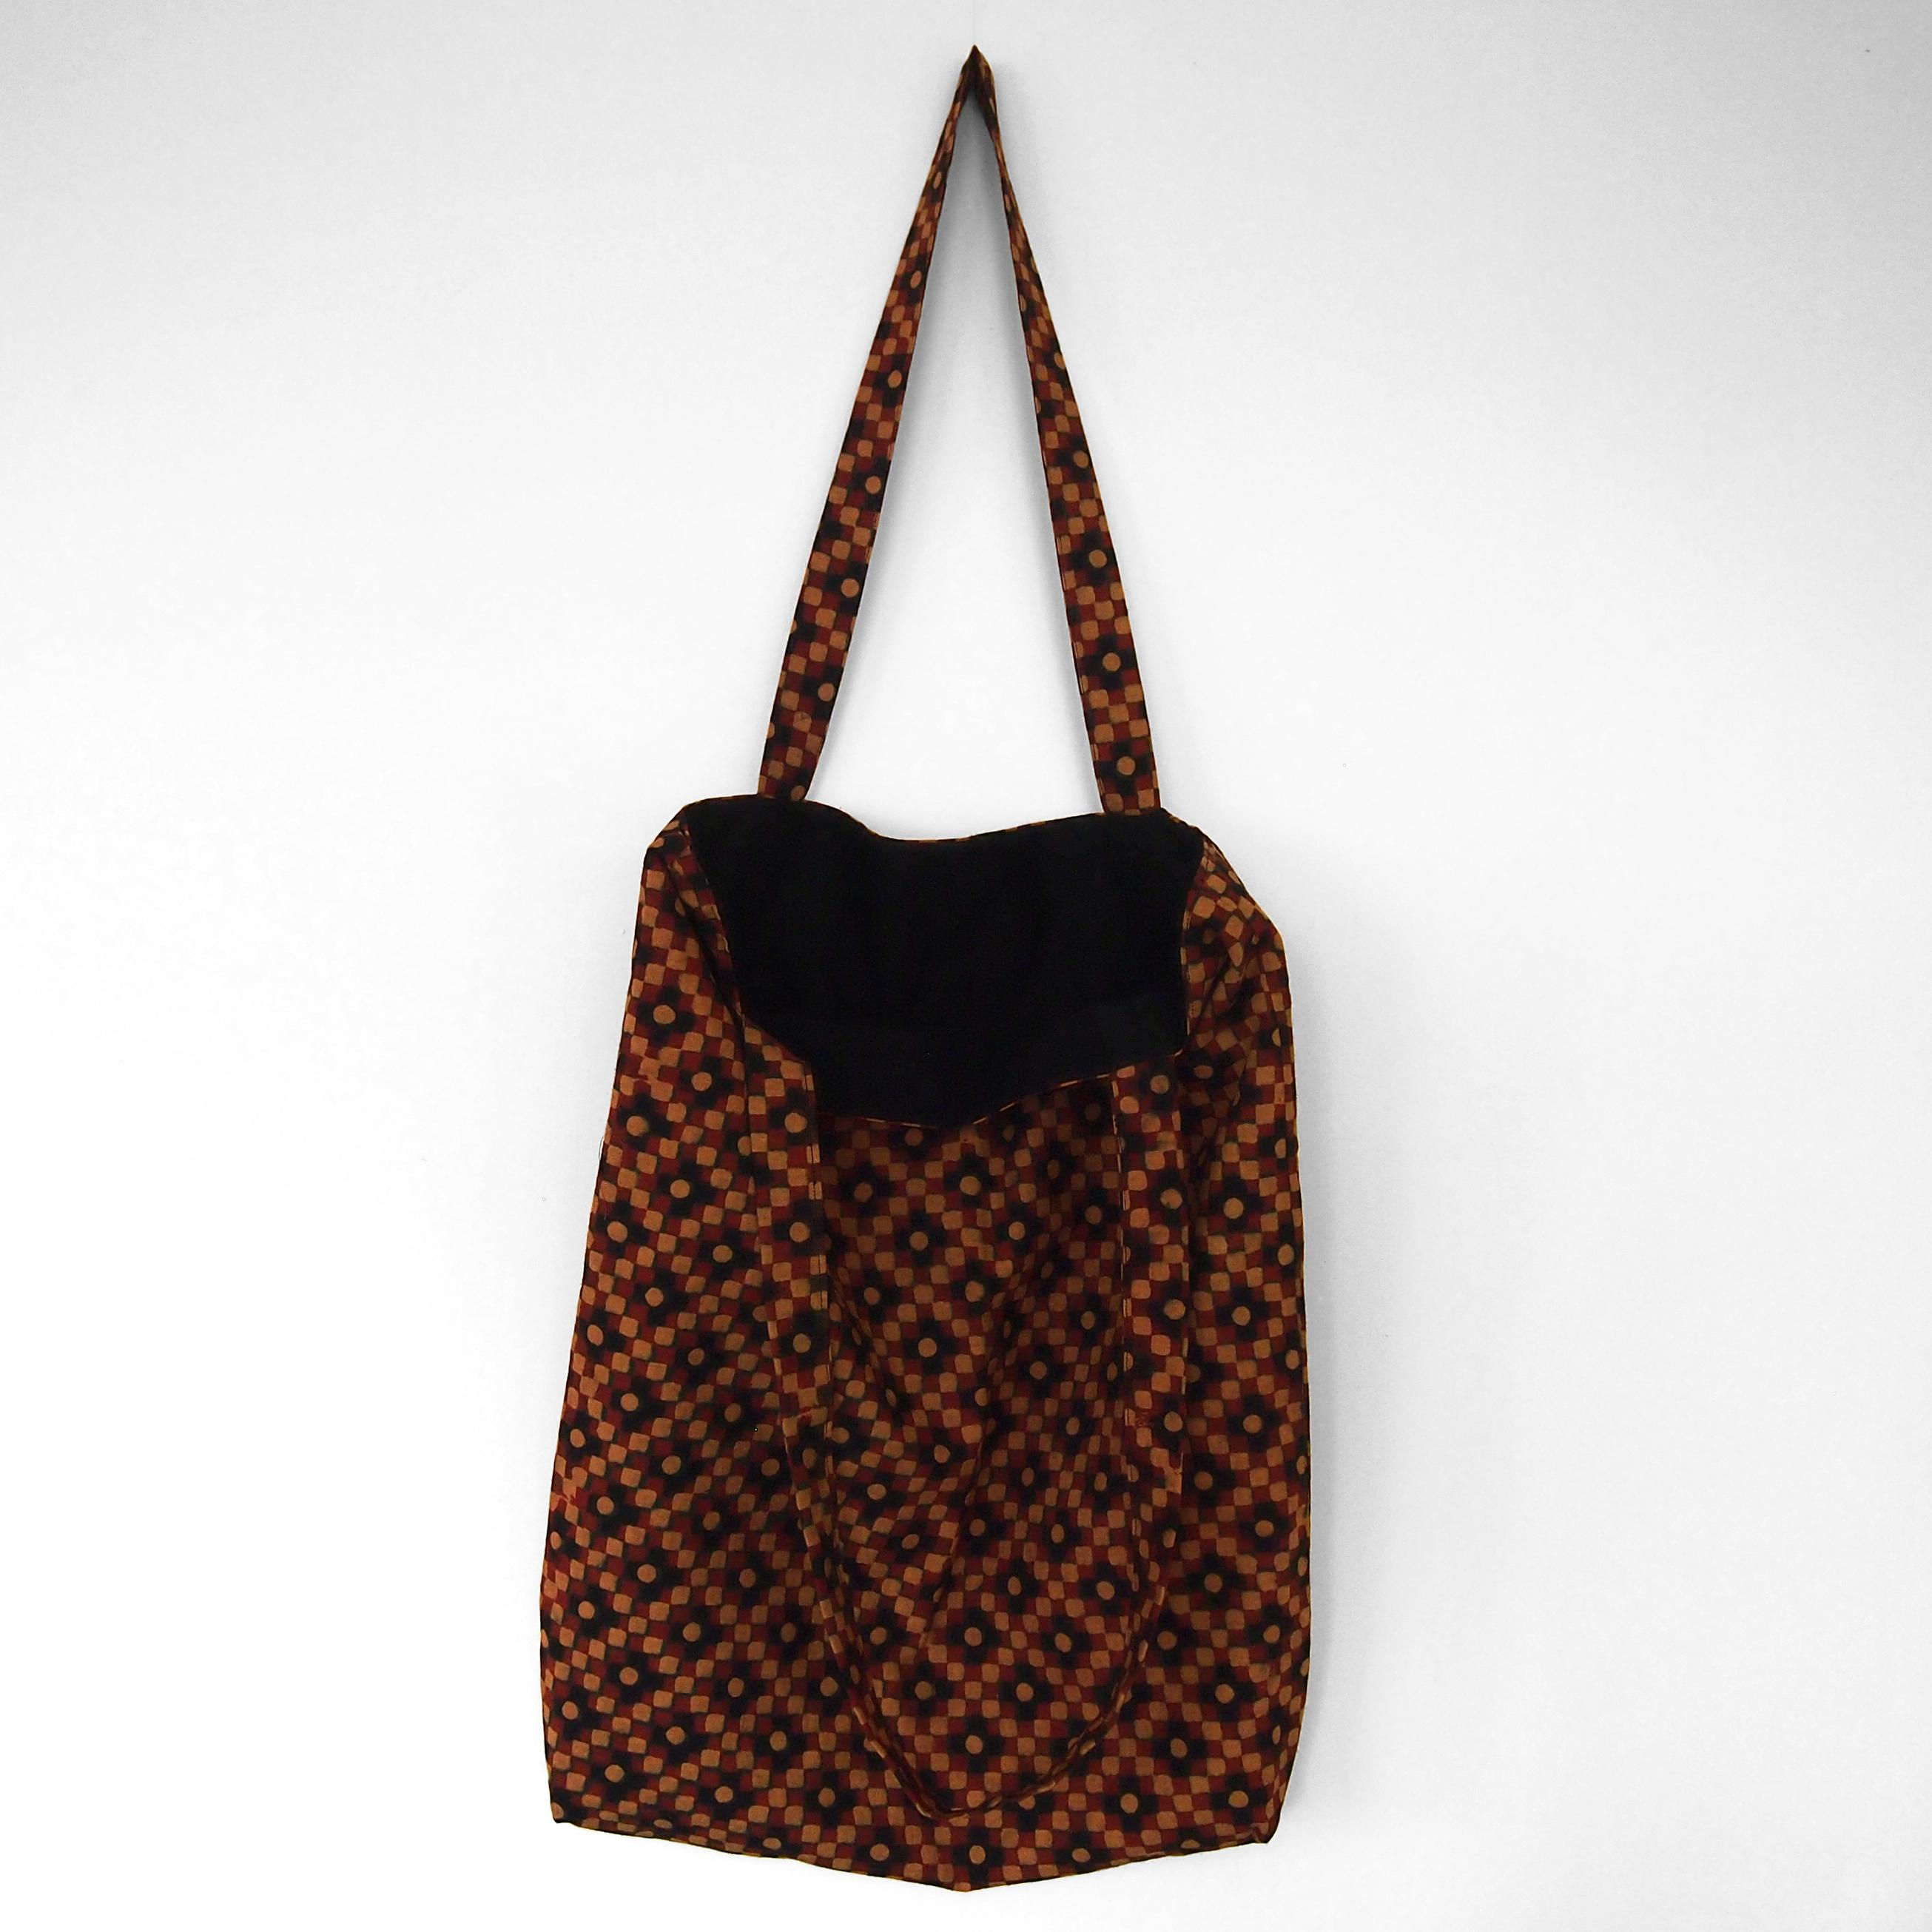 block printed tote bag, black, orange yellow green square design, lined with black cotton, open